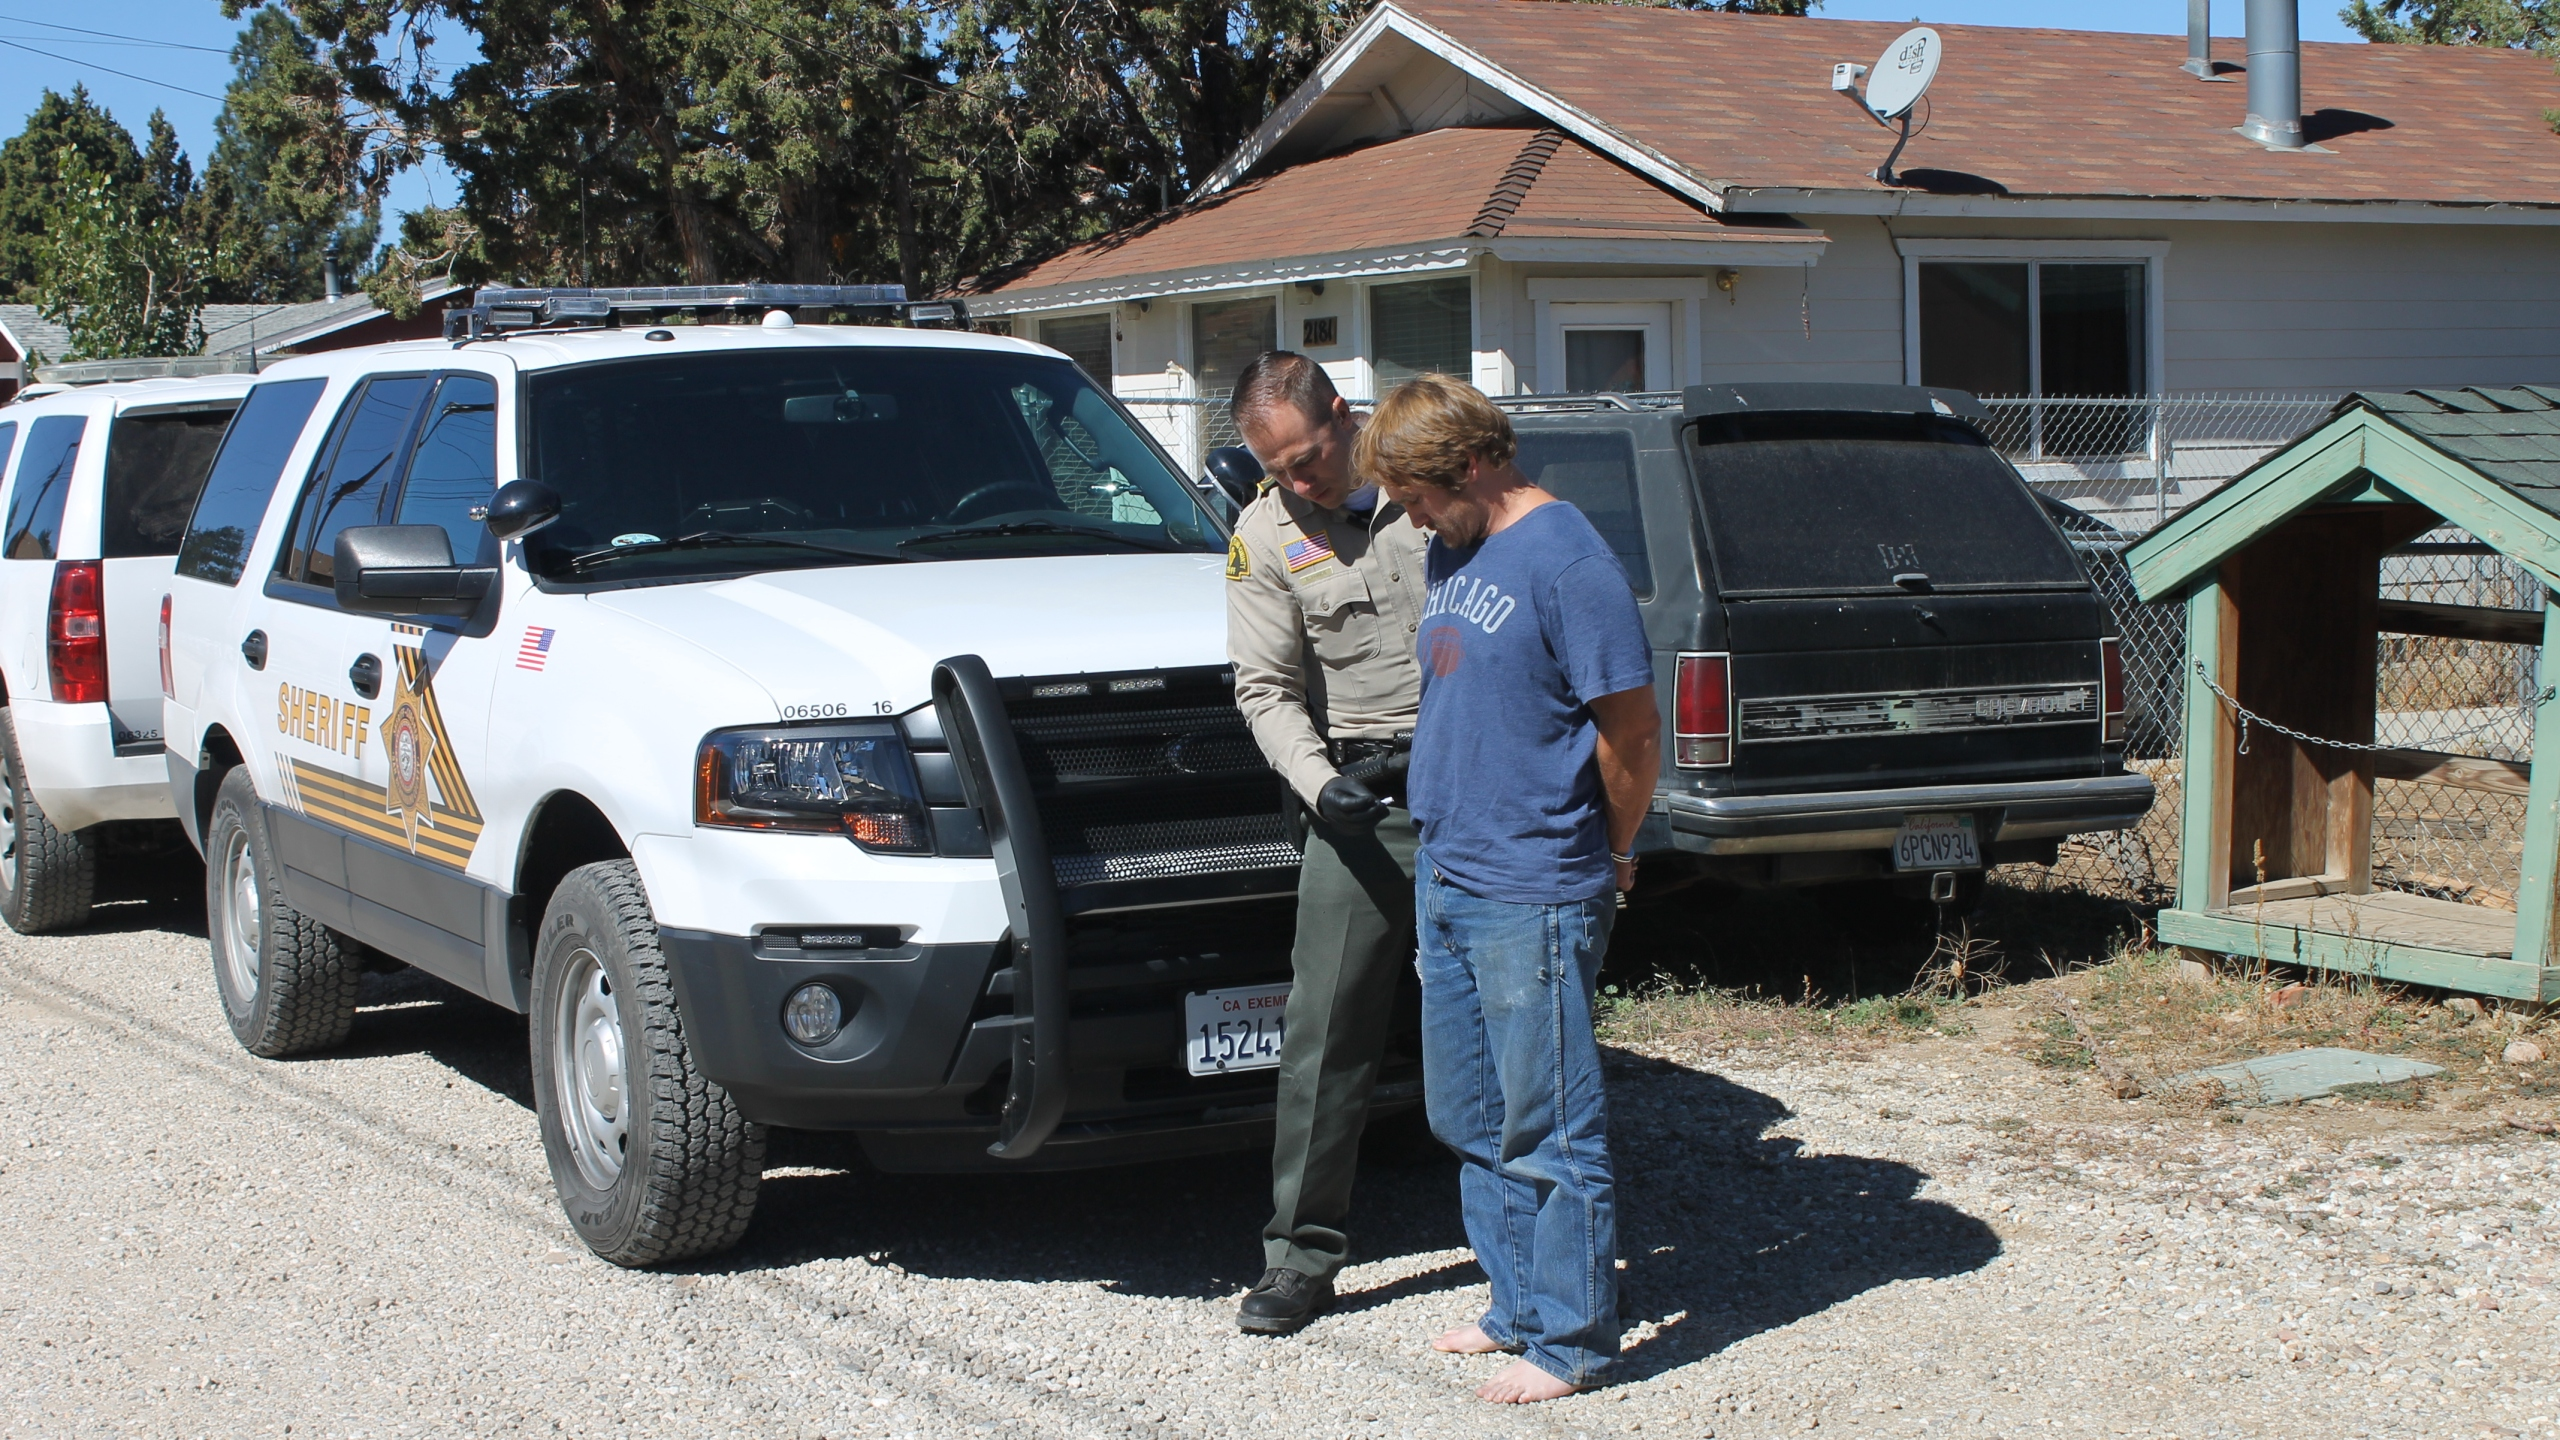 Terrance Jerome Nank, 45, is taken into custody by a San Bernardino County sheriff's deputy in Sugarloaf in this photo released Oct. 10, 2018, by the Sheriff's Department.